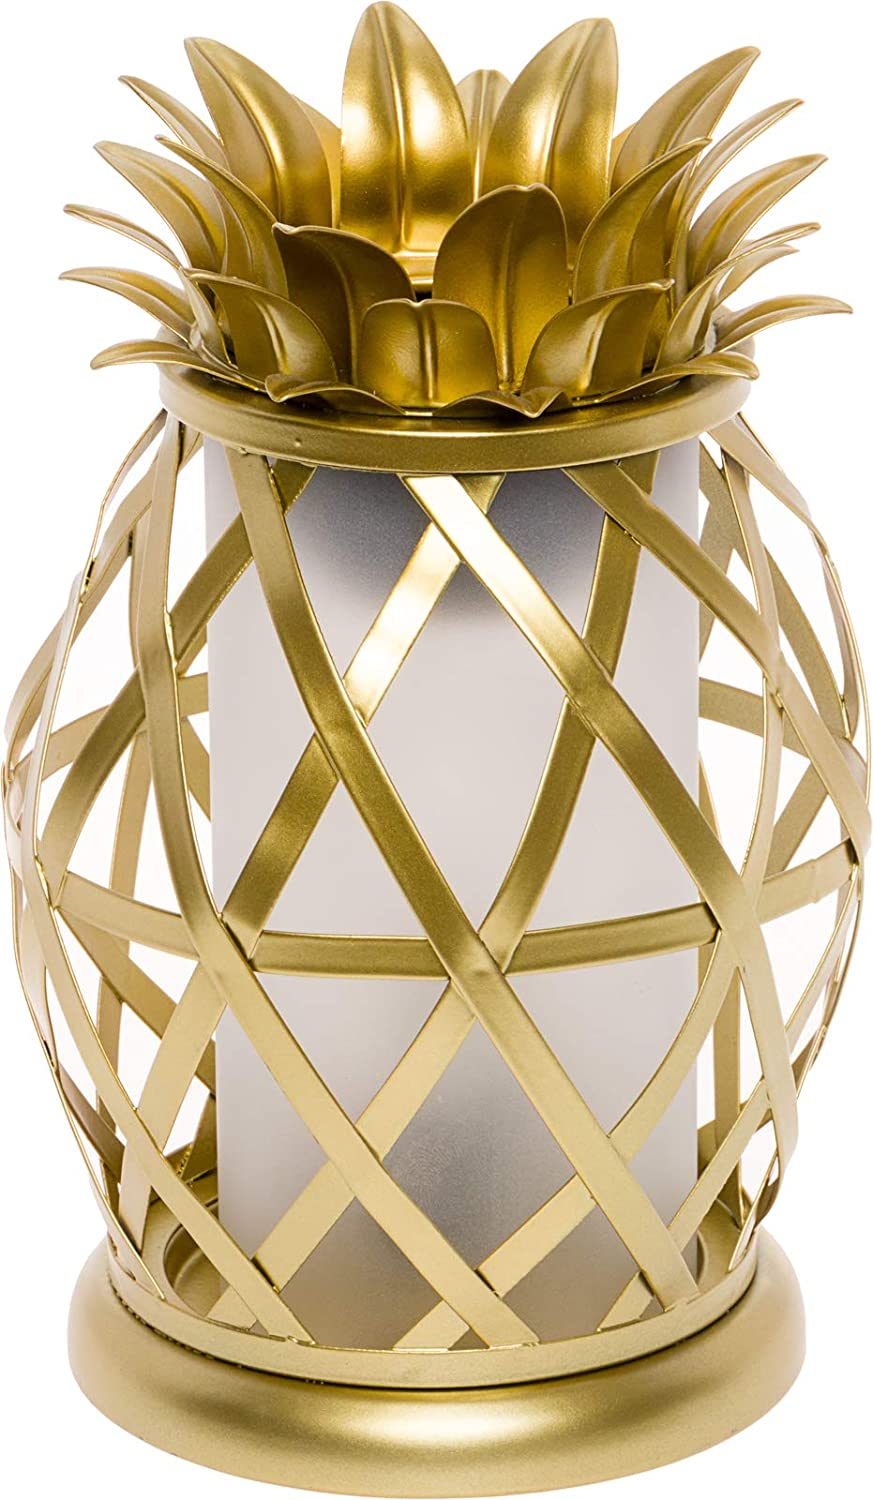 Mindful Design Golden Pineapple Electric Wax Warmer - Tropical Home Fragrance Wax Burner (Gold)